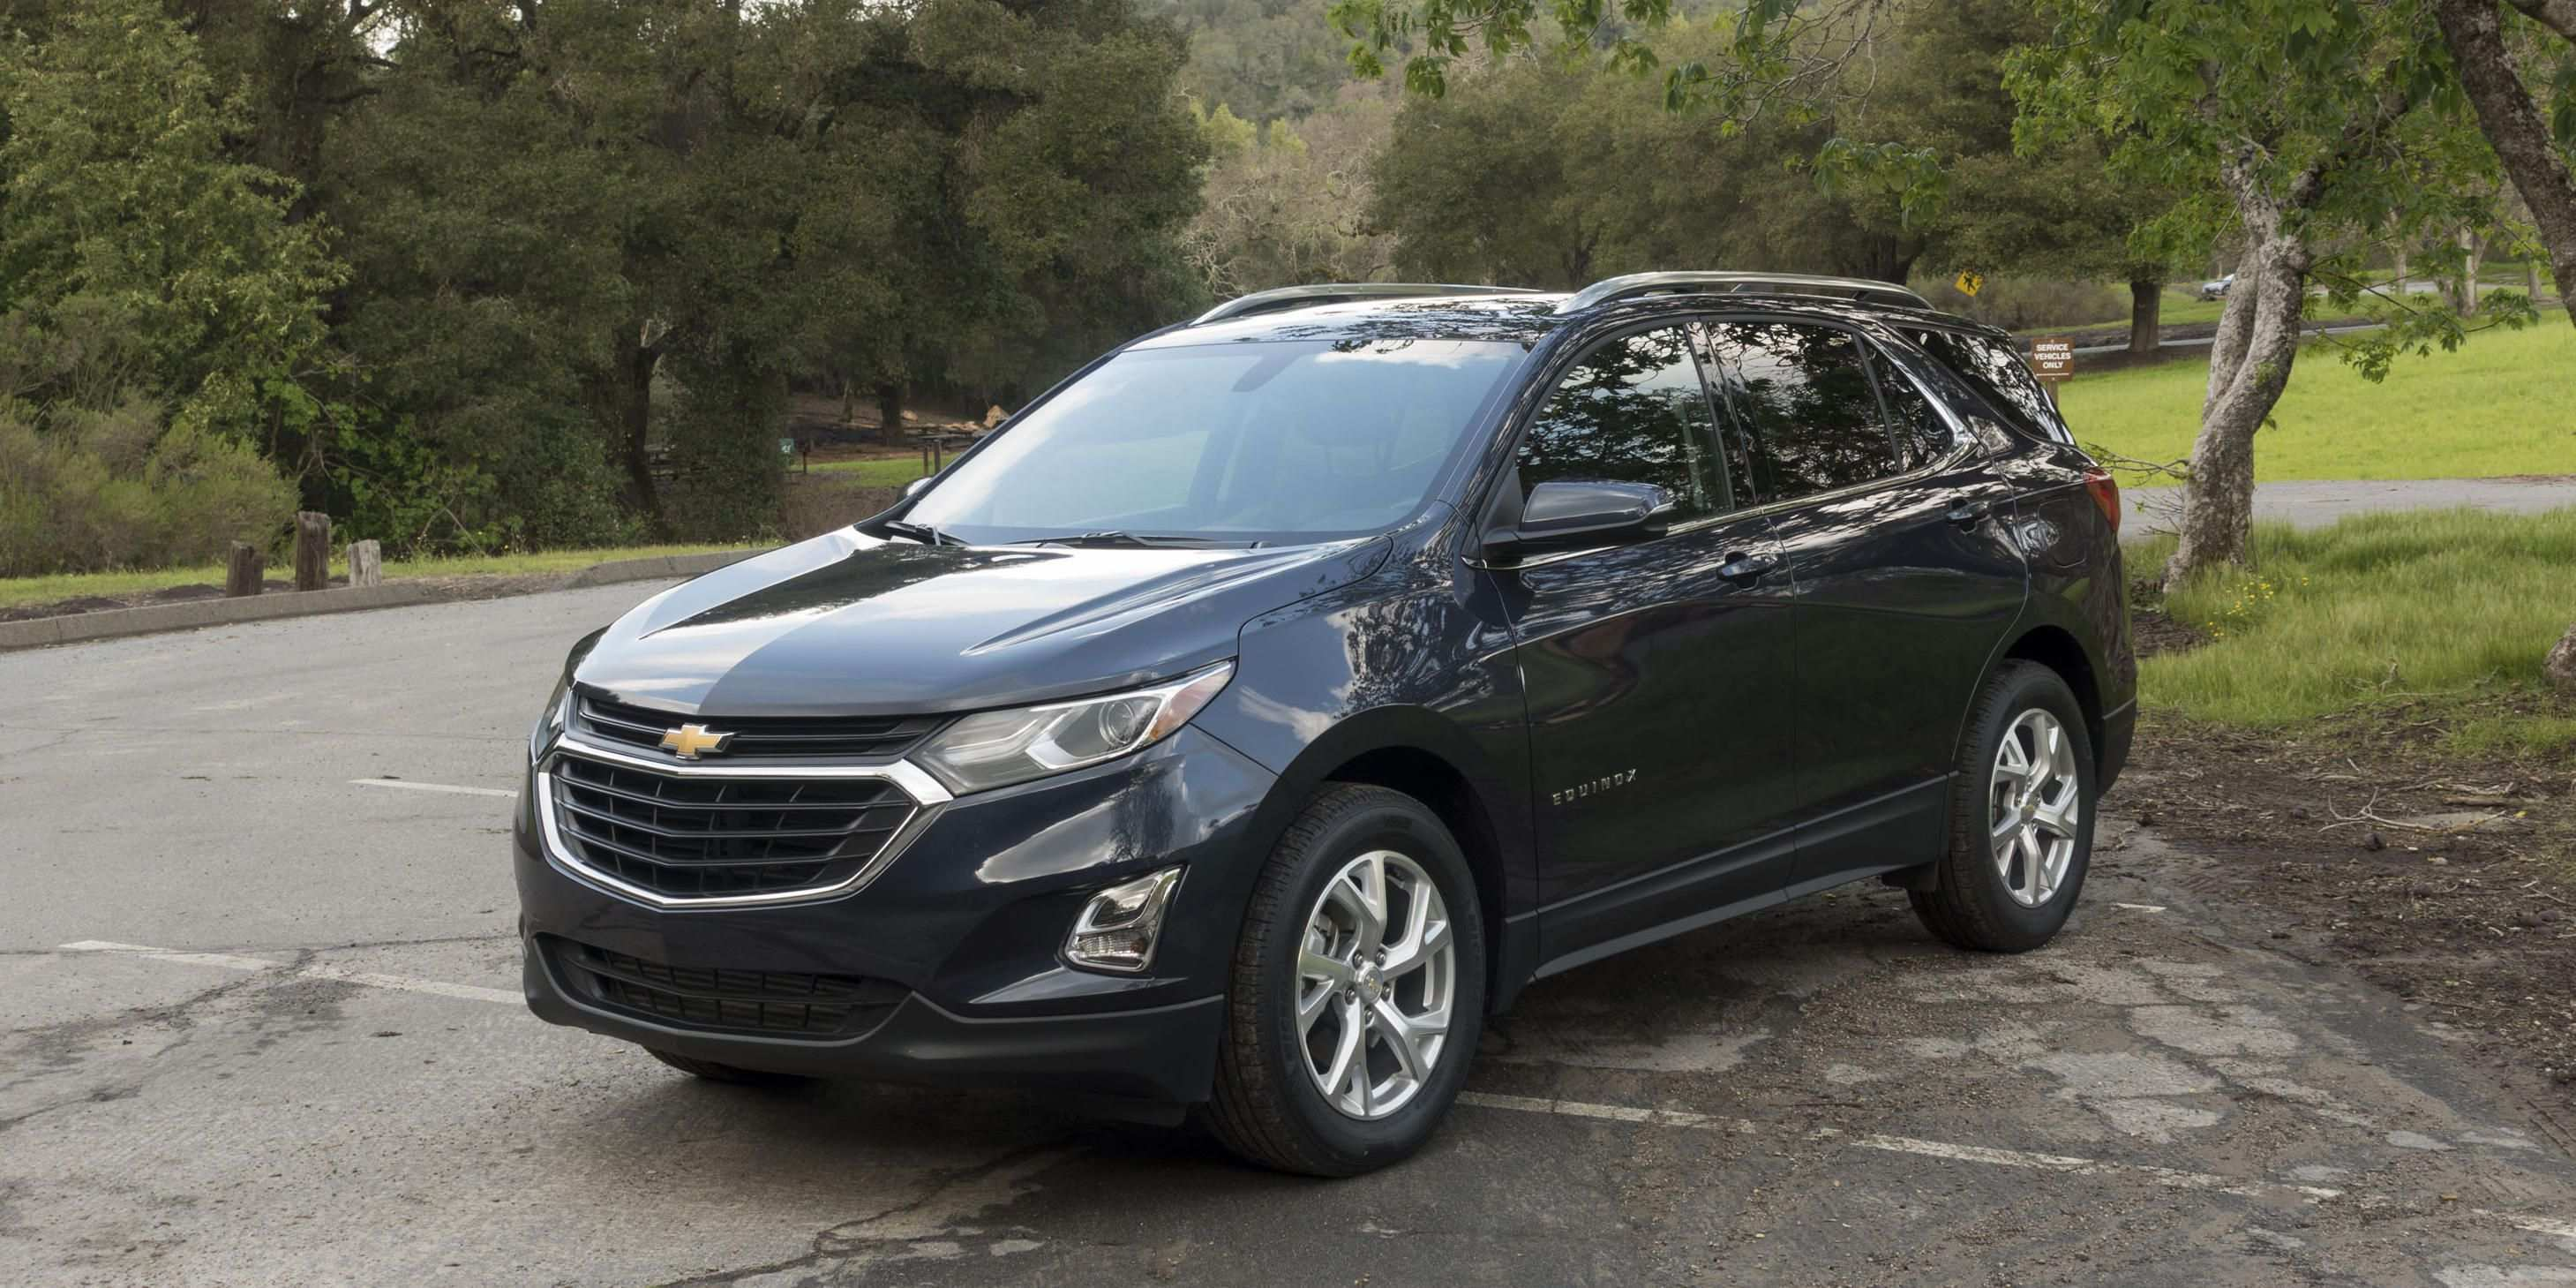 68 A 2019 Chevrolet Equinox Price And Review